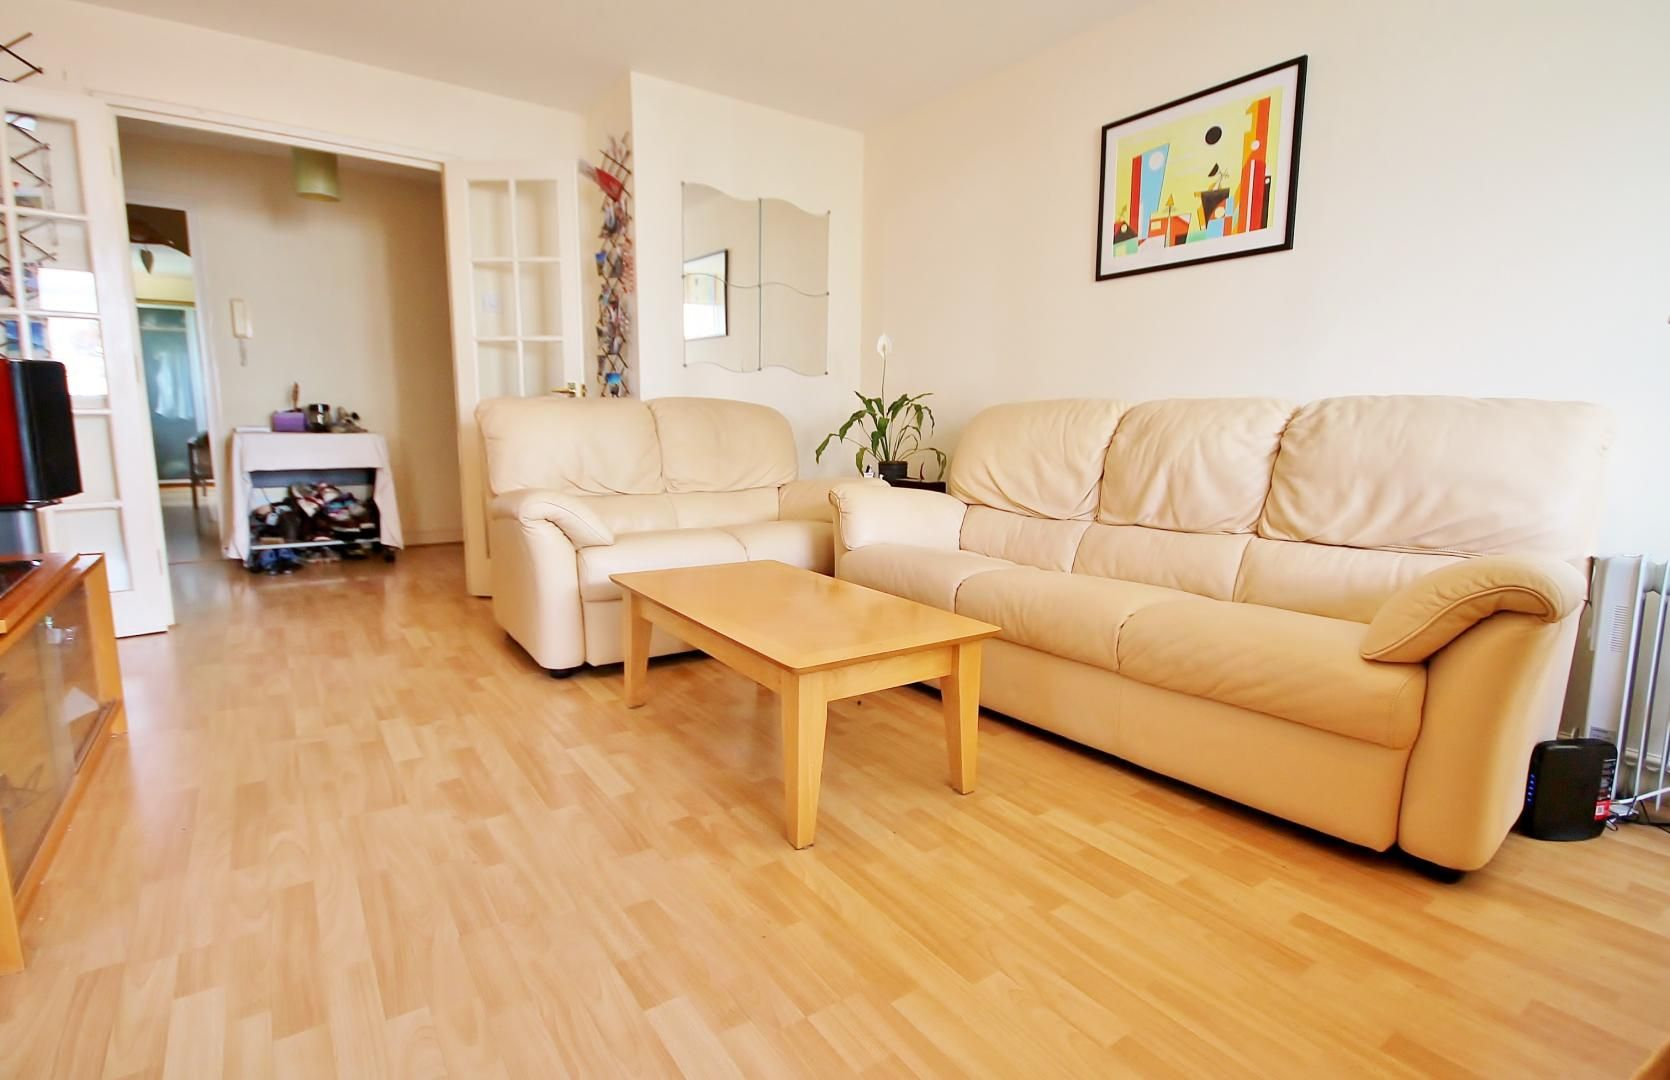 2 bed flat to rent in Wheat Sheaf Close - Property Image 1